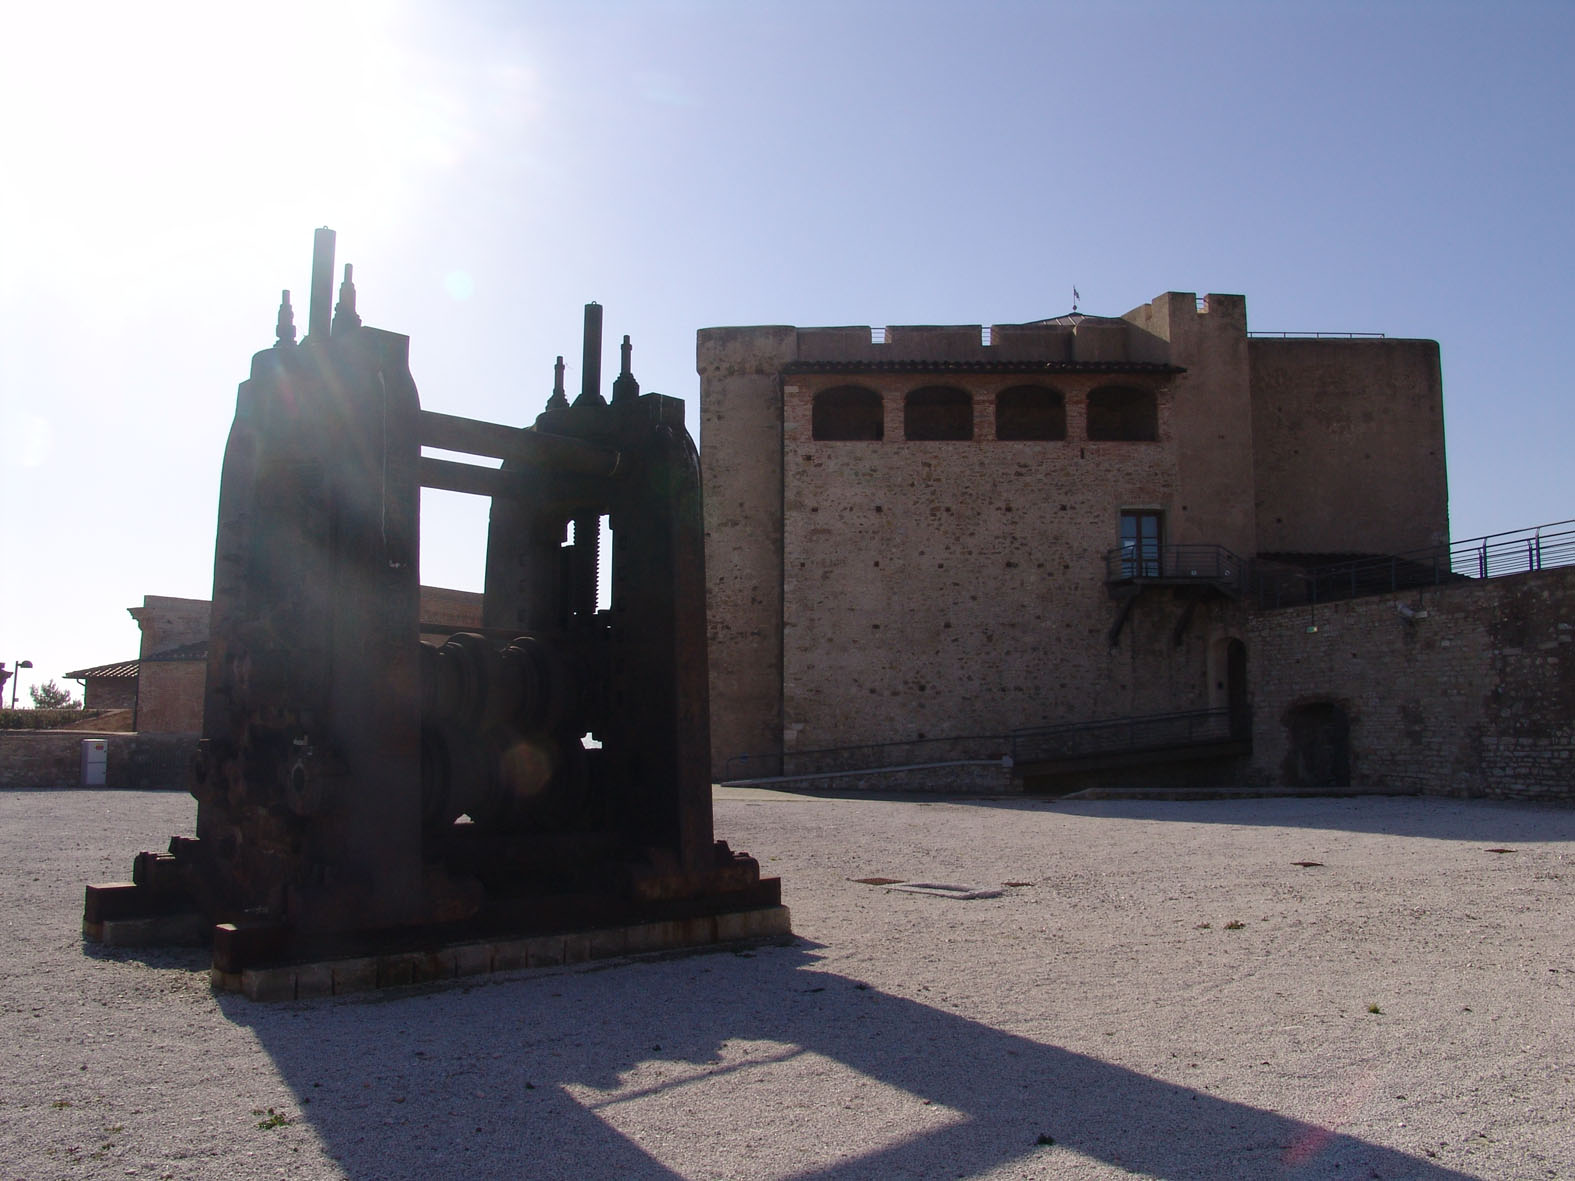 The Piombino Castle and Town Museum